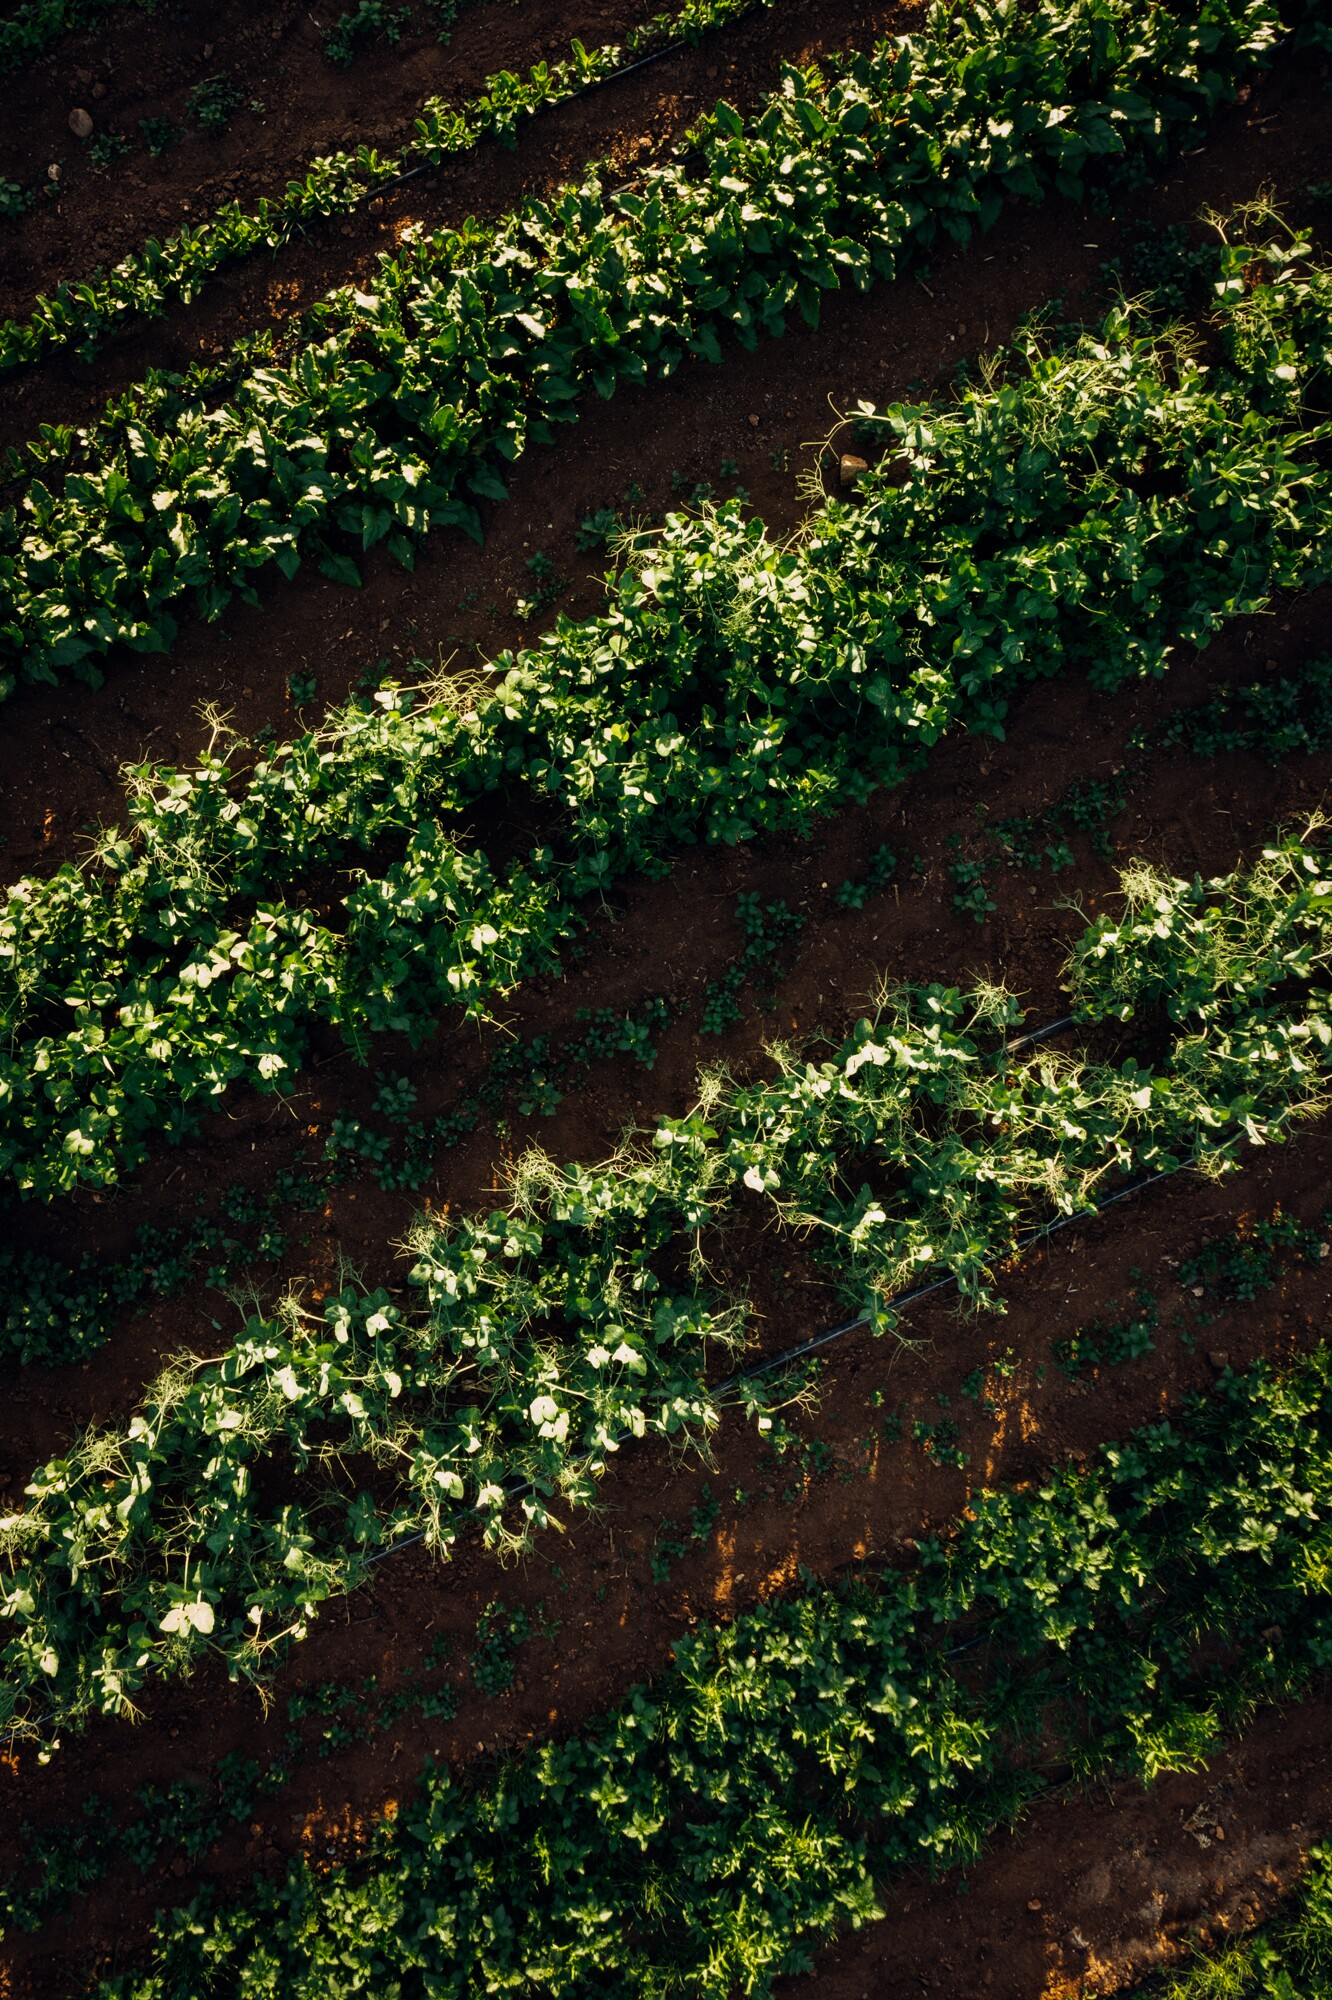 An aerial view of the rows of crops at Girl & Dug Farm.